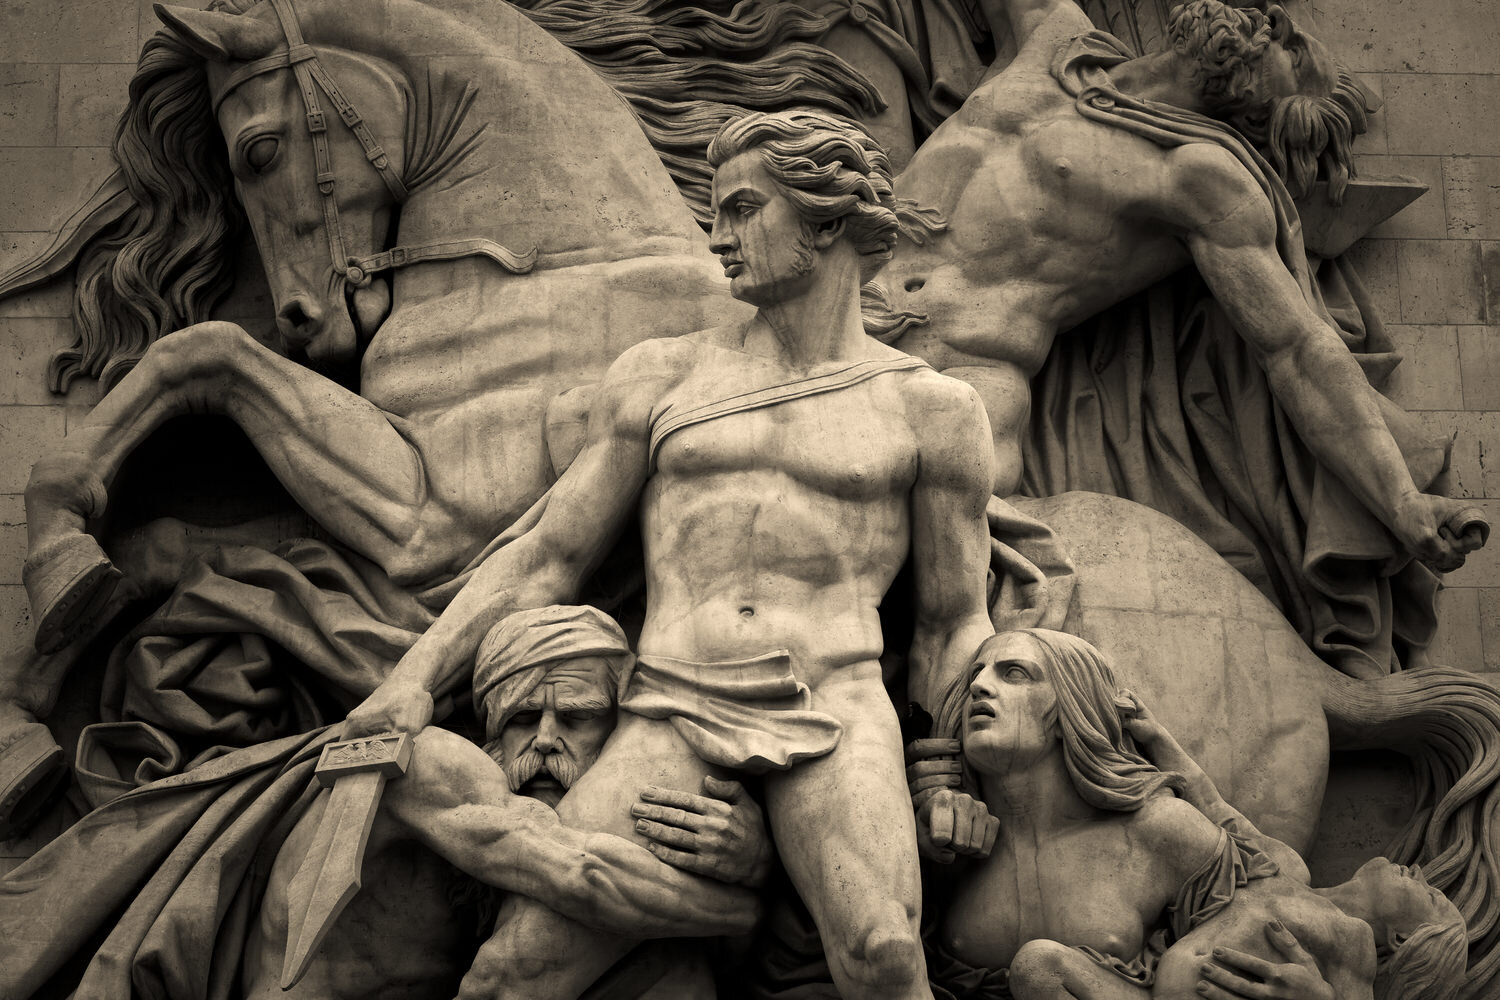 Heroic composition constructed around circles and triangles at the Arc de Triomphe.